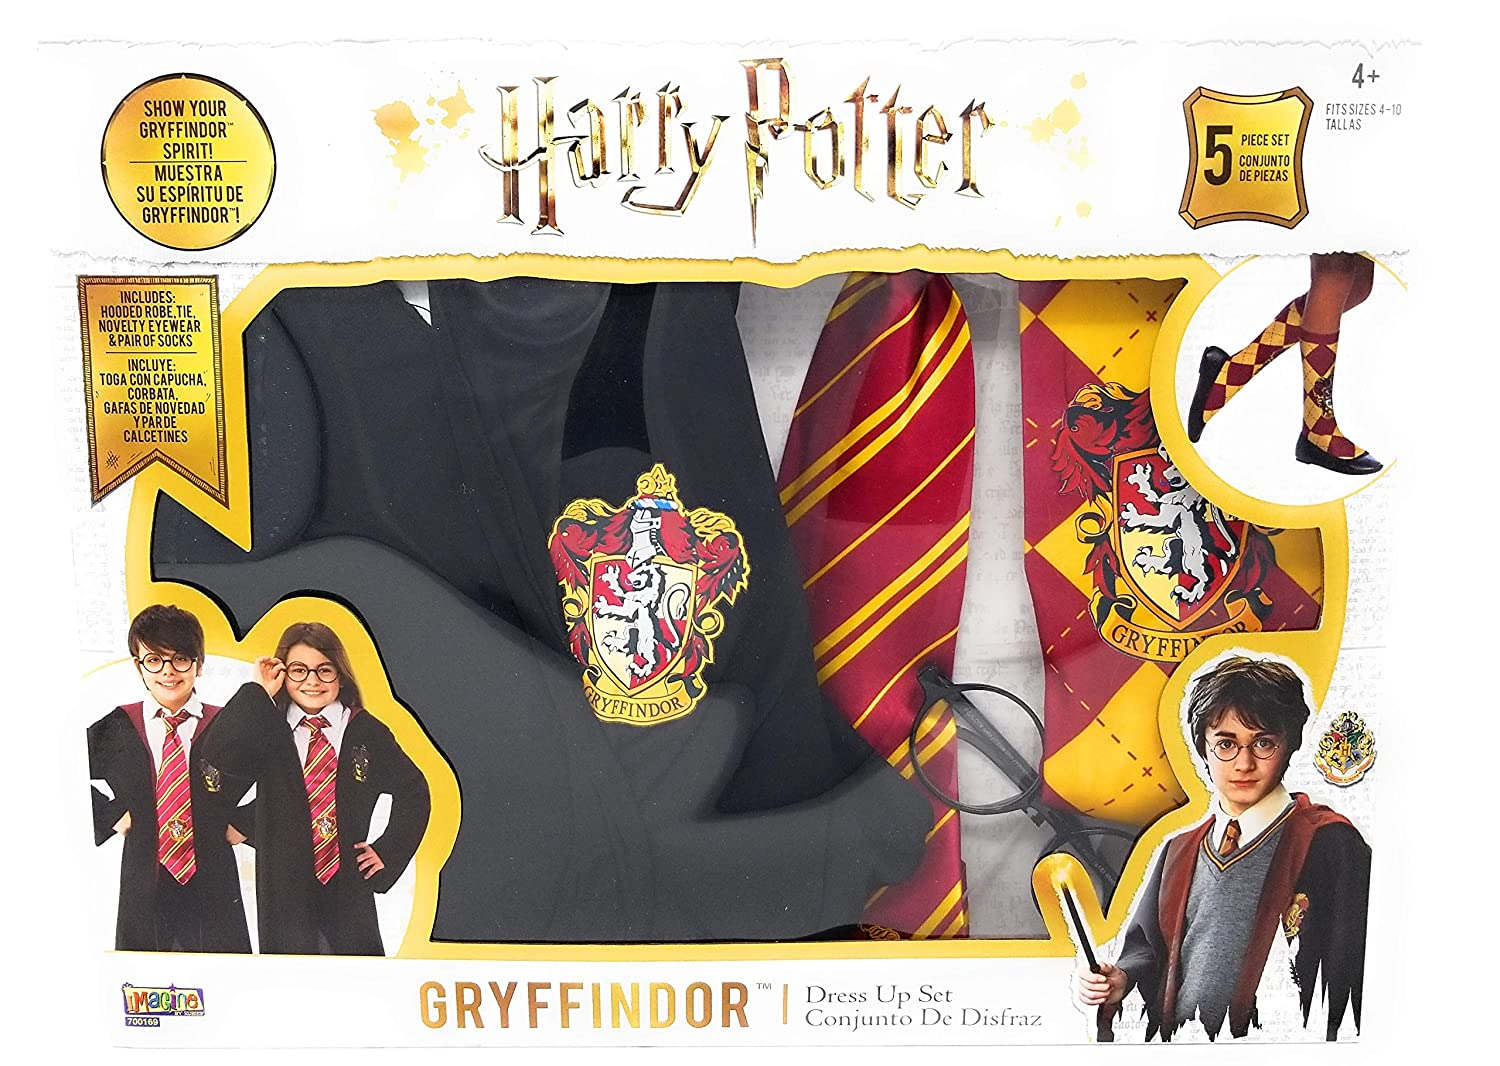 Amazon.com: Harry Potter Gryffindor Costume and Dress Up Set for Ages 4 to 10: Clothing